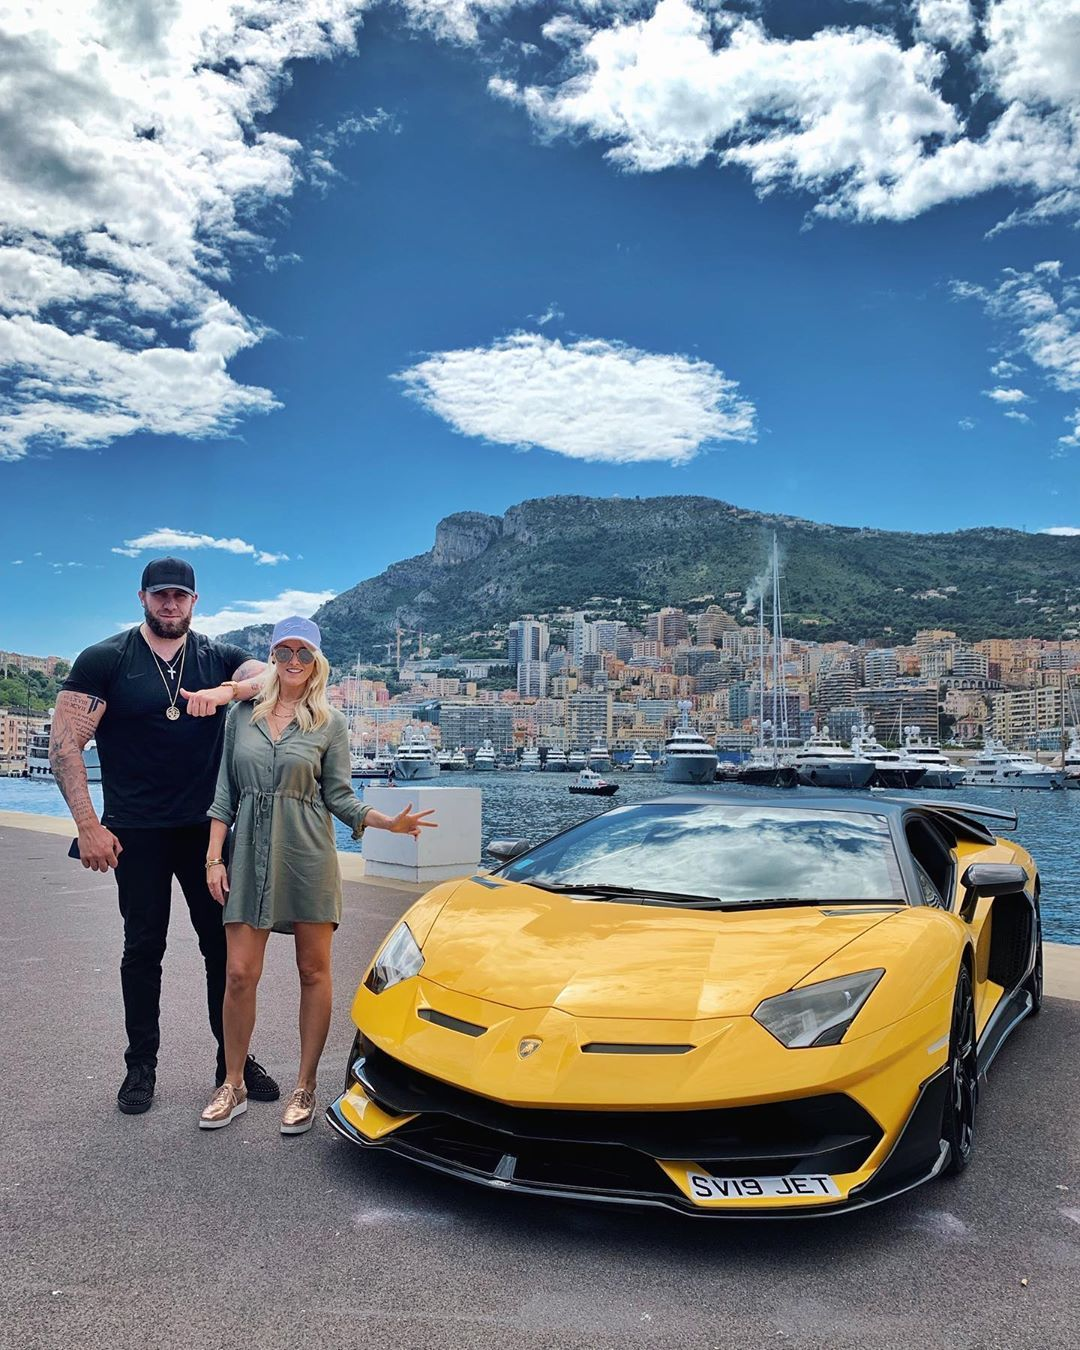 Filming With The Hulk Gmk001 Of Monaco Youtube Video Out Tomorro Dream Cars Lamborghini Lamborghini Aventador Performance Cars